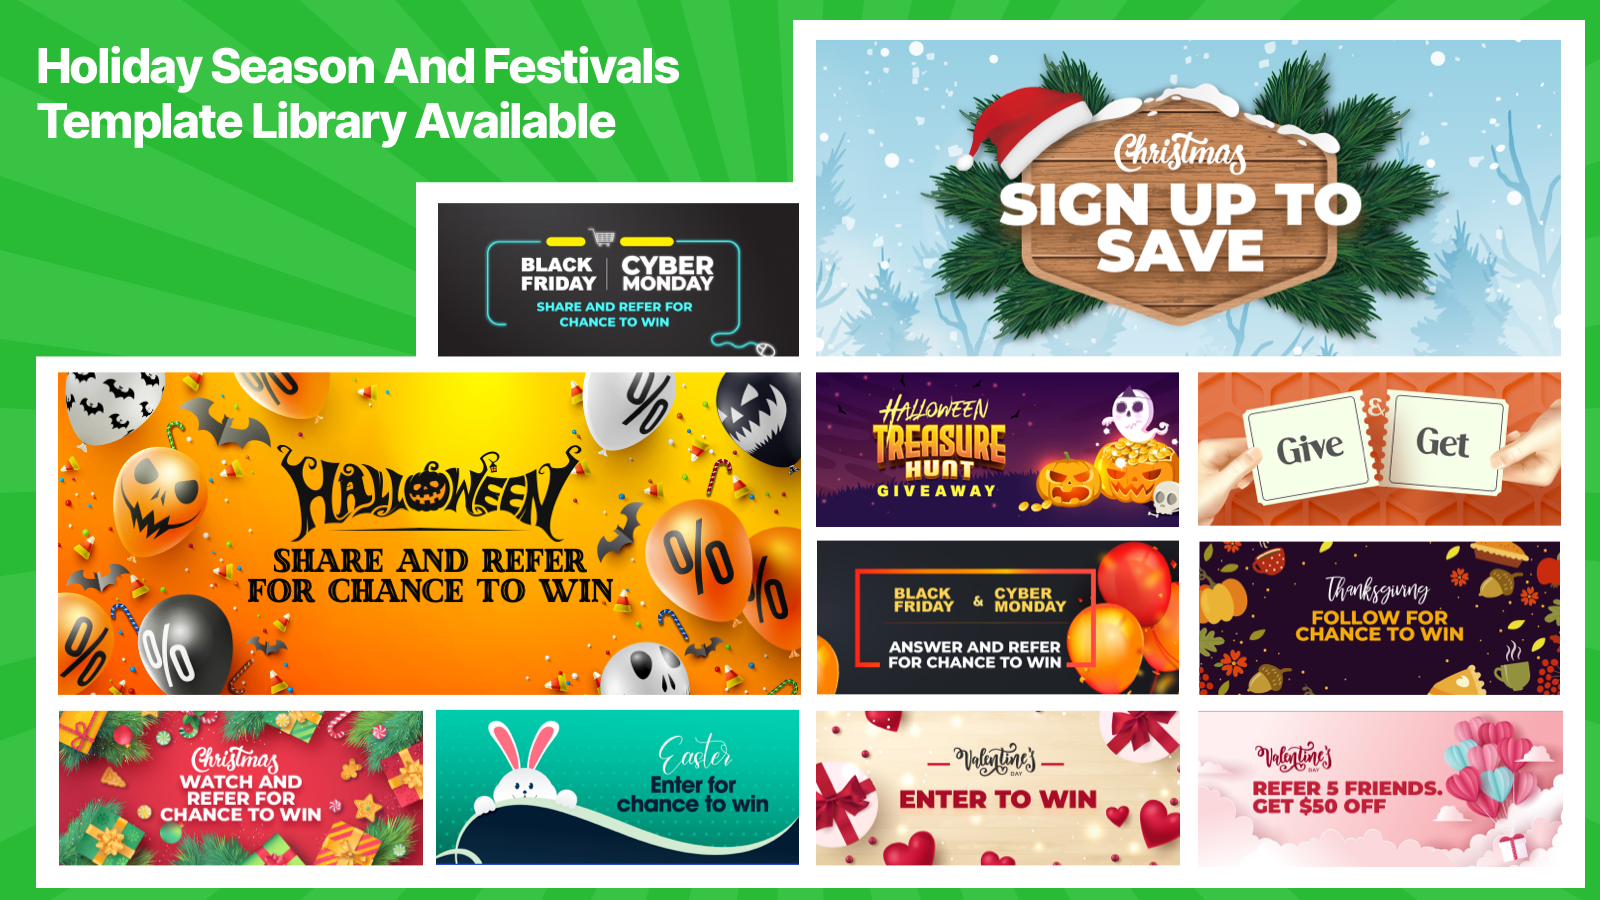 More Examples of instant win, giveaways, viral share campaigns